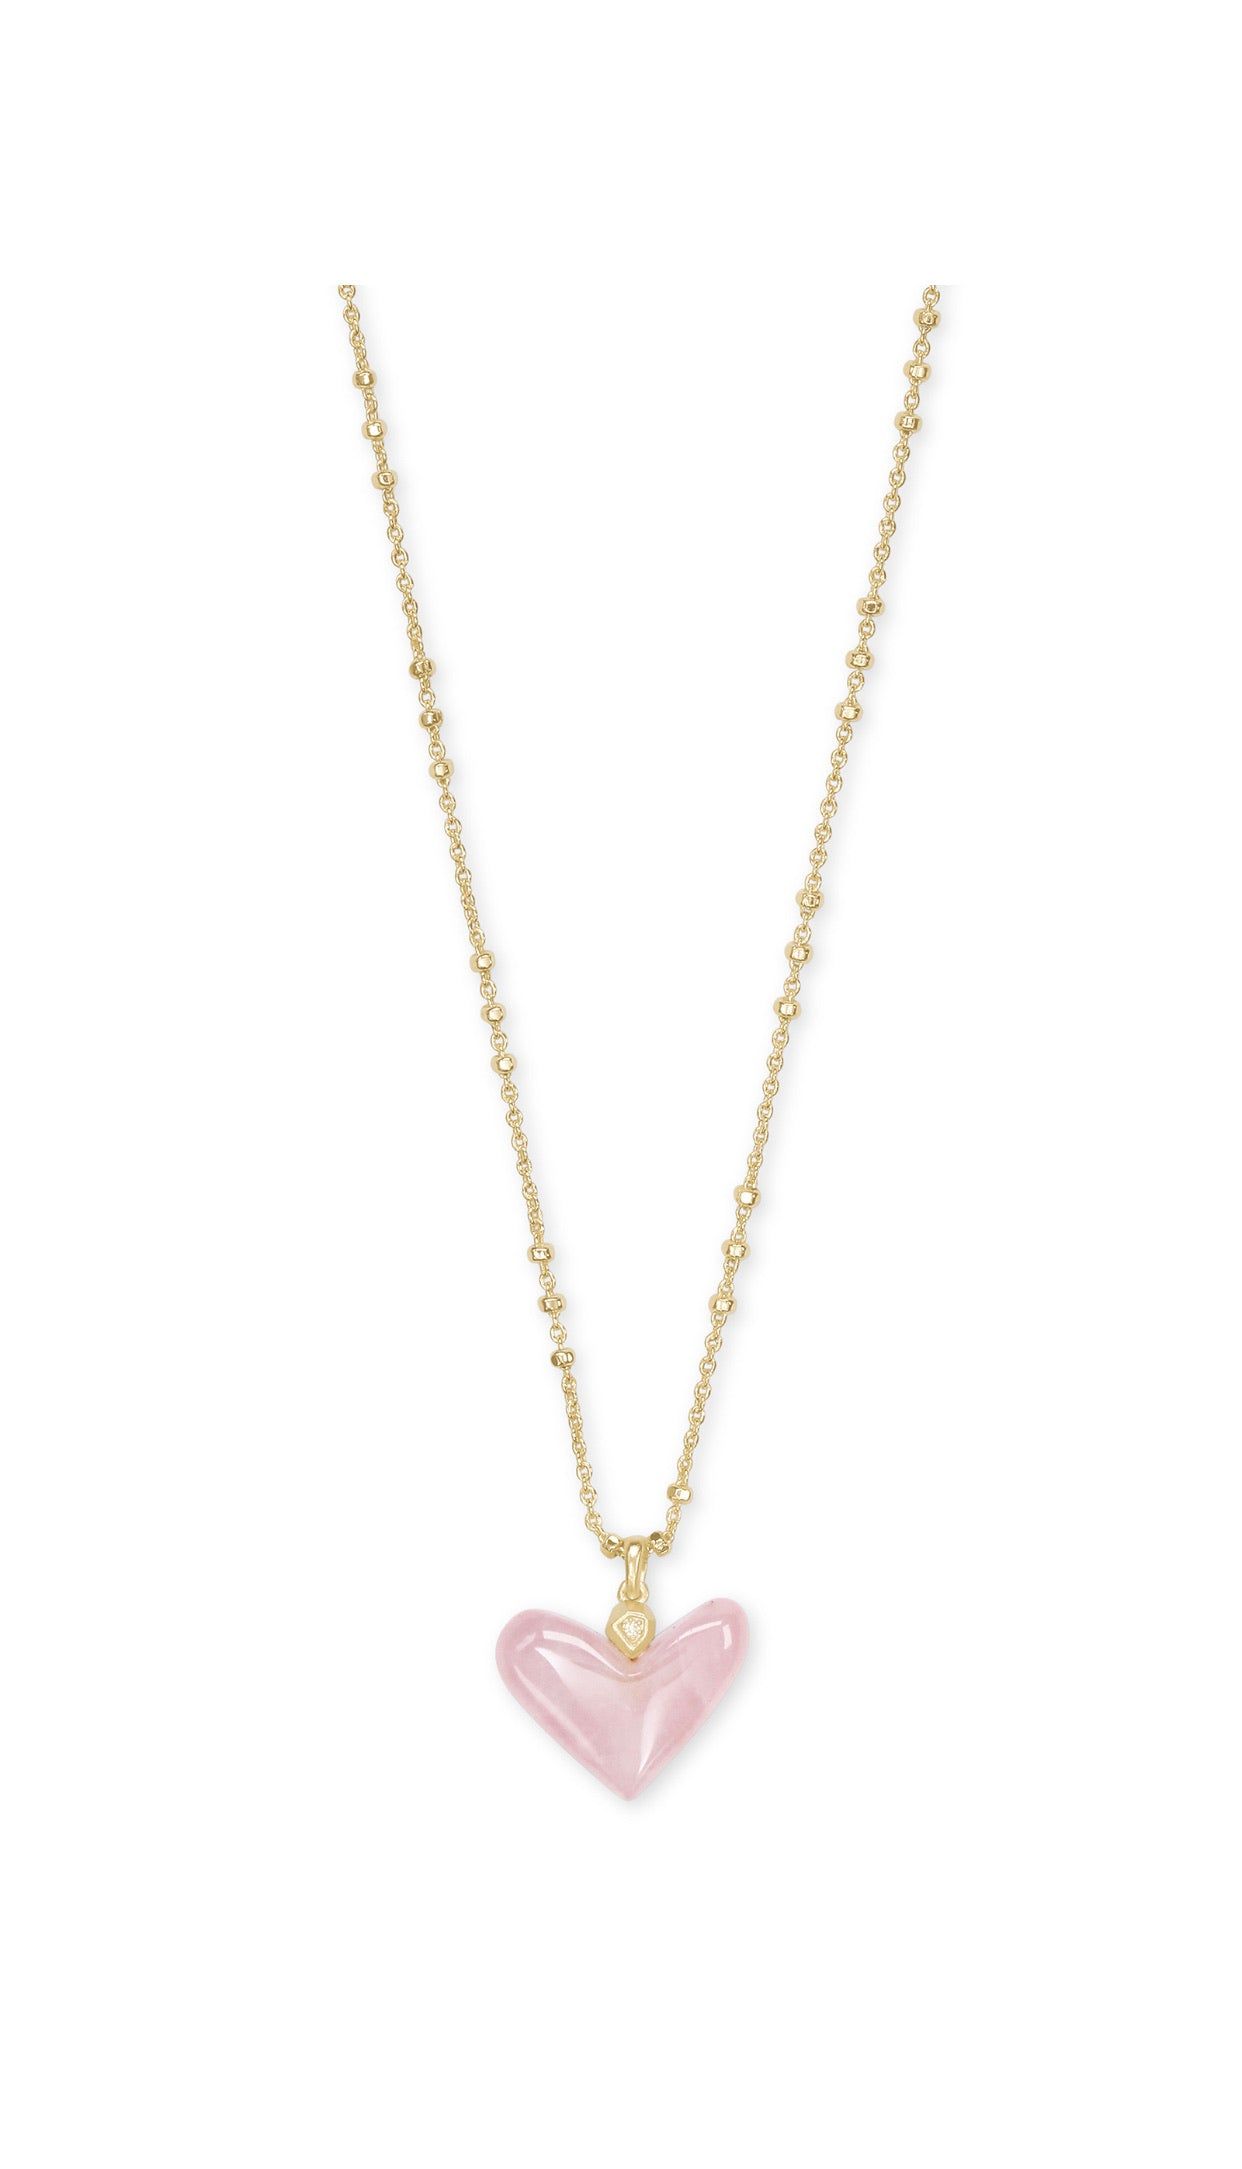 Poppy Heart NECKLACE GOLD - Rose